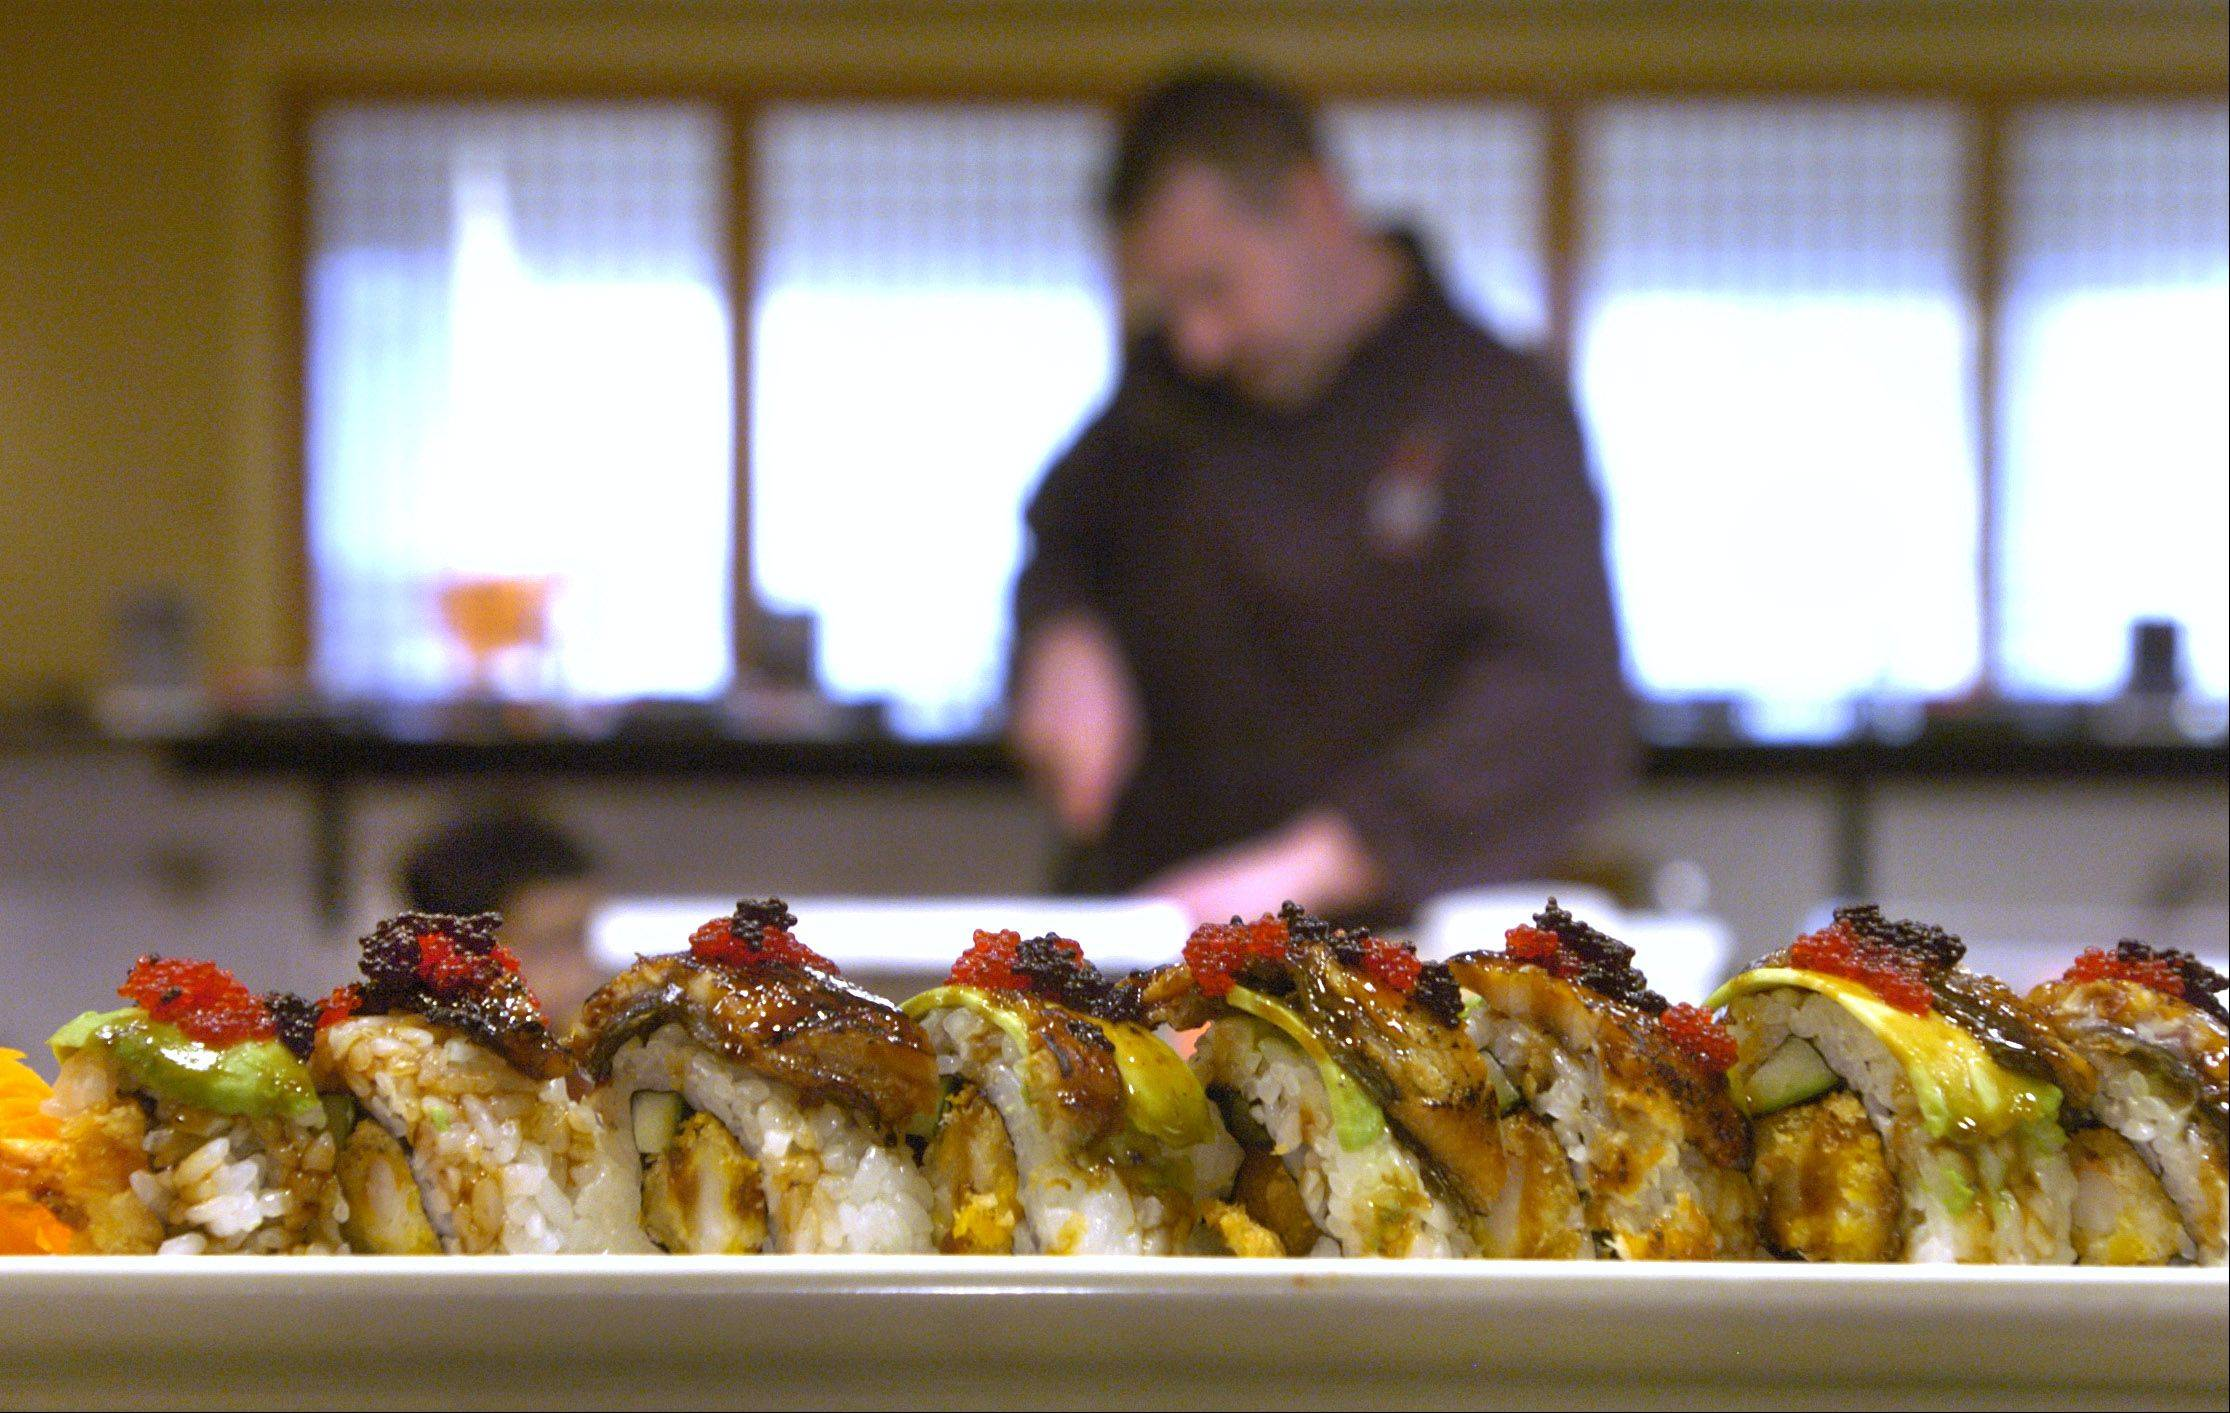 In the background, chef/owner Cliff Ostrowski prepares fruit sushi rolls for dessert; his eel sushi rolls are in the foreground.